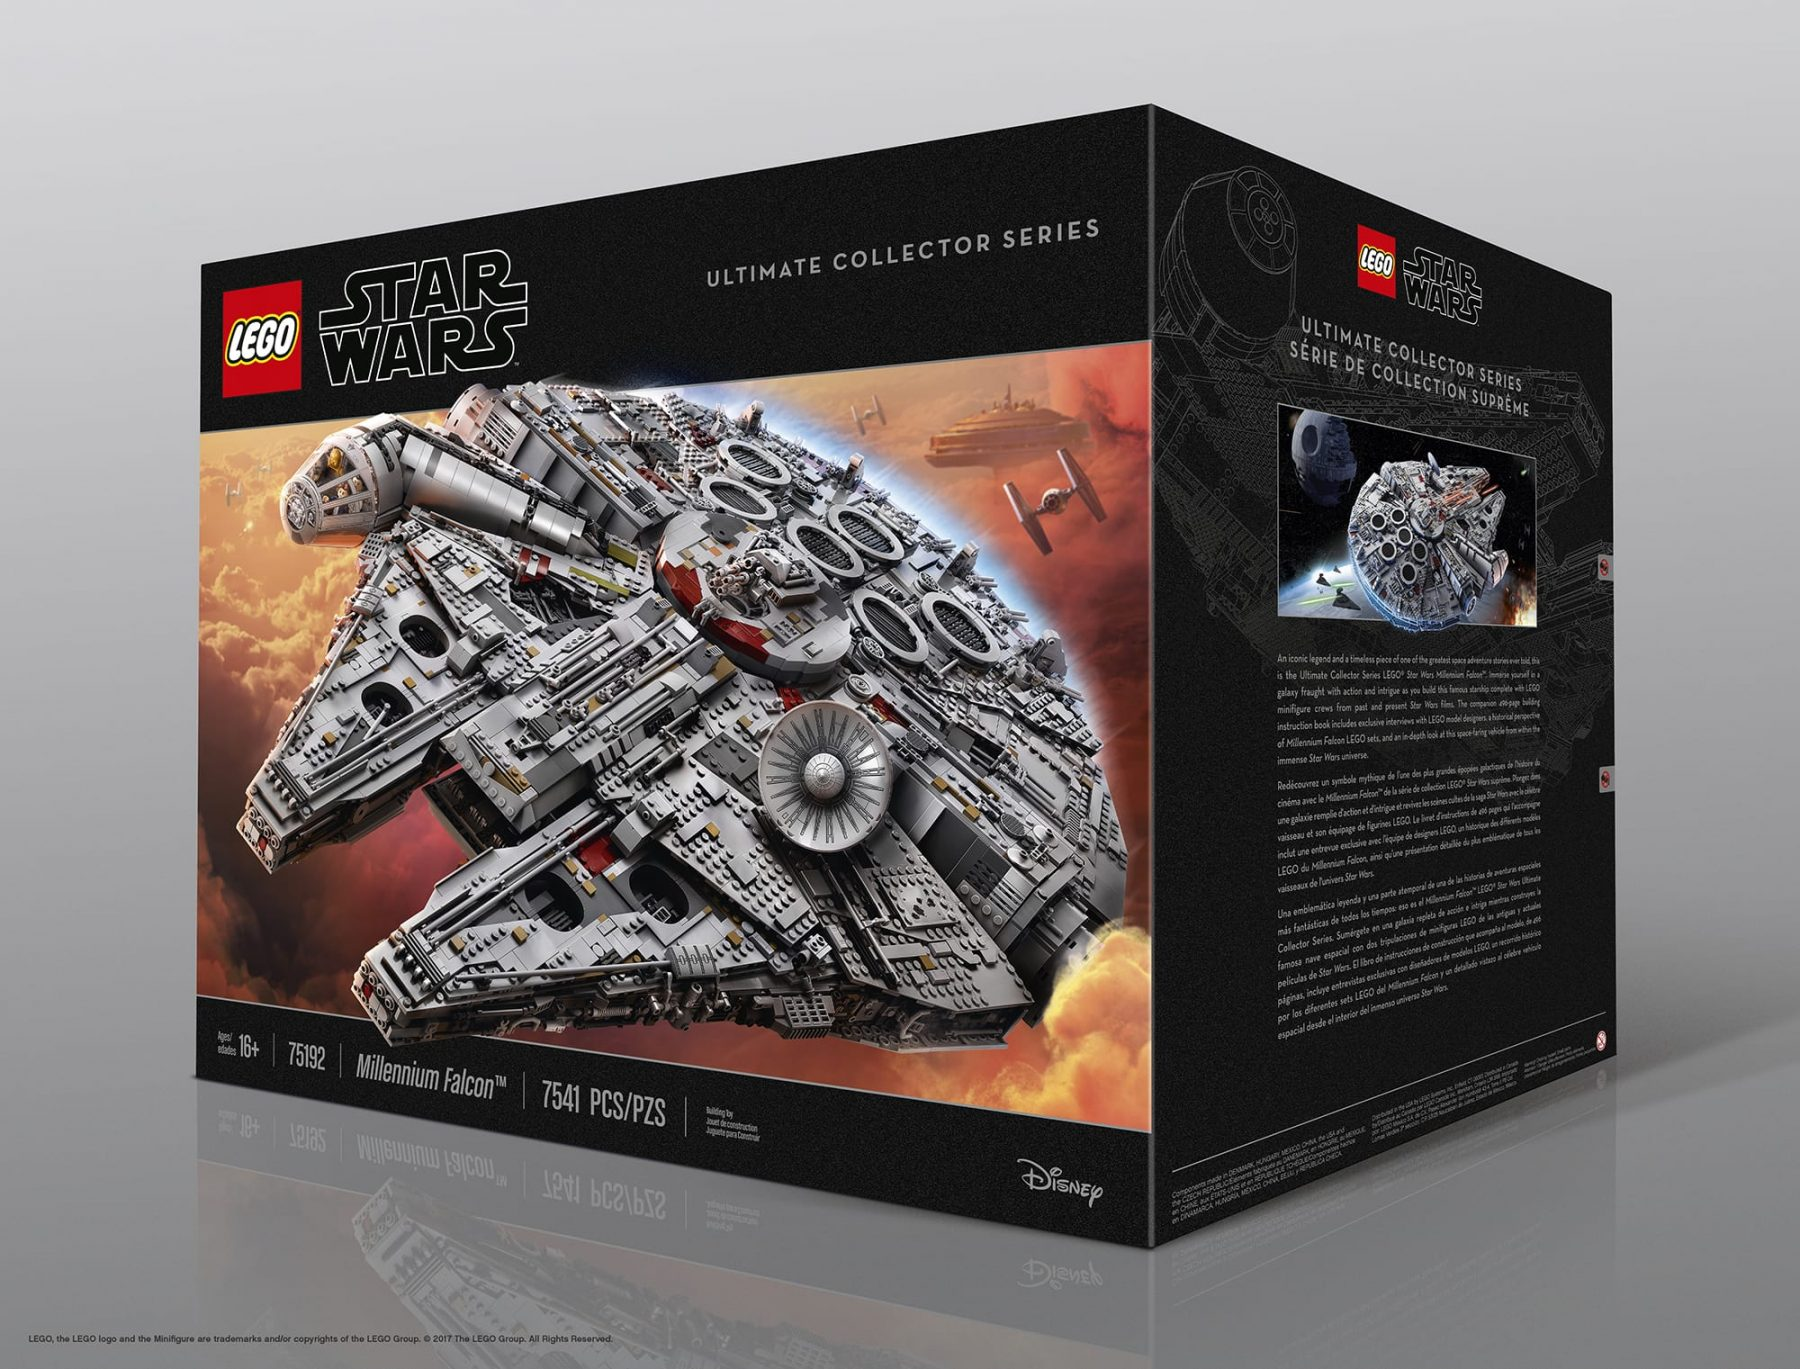 LEGO Star Wars UCS Packaging — Design: MS, Bill Colburn, Sara Saffery, Peter Cangialosi, Doodle / Photo: Atwater